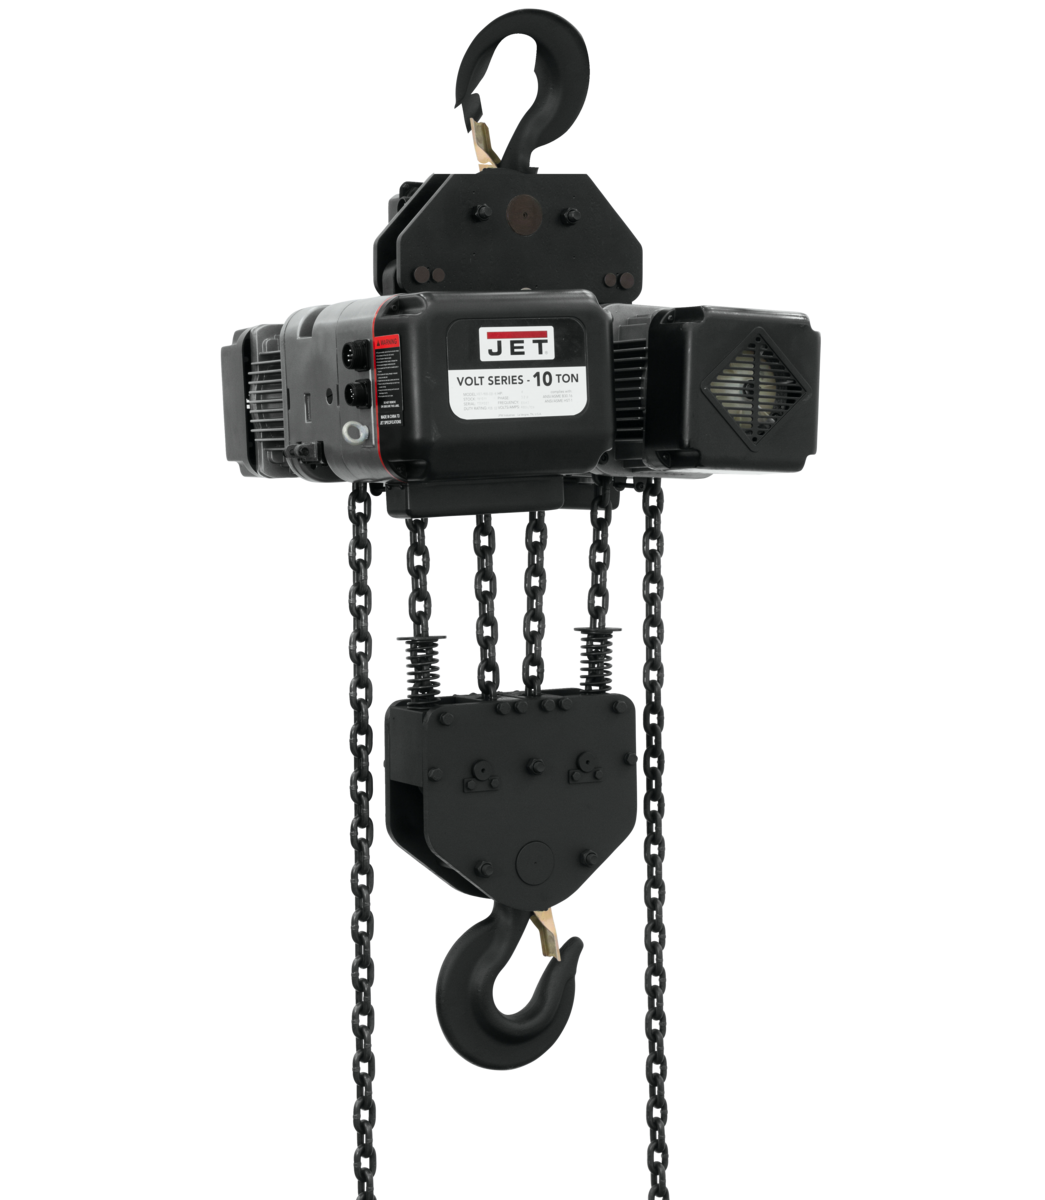 VOLT 10T VARIABLE-SPEED ELECTRIC HOIST  3PH 230V 20' LIFT